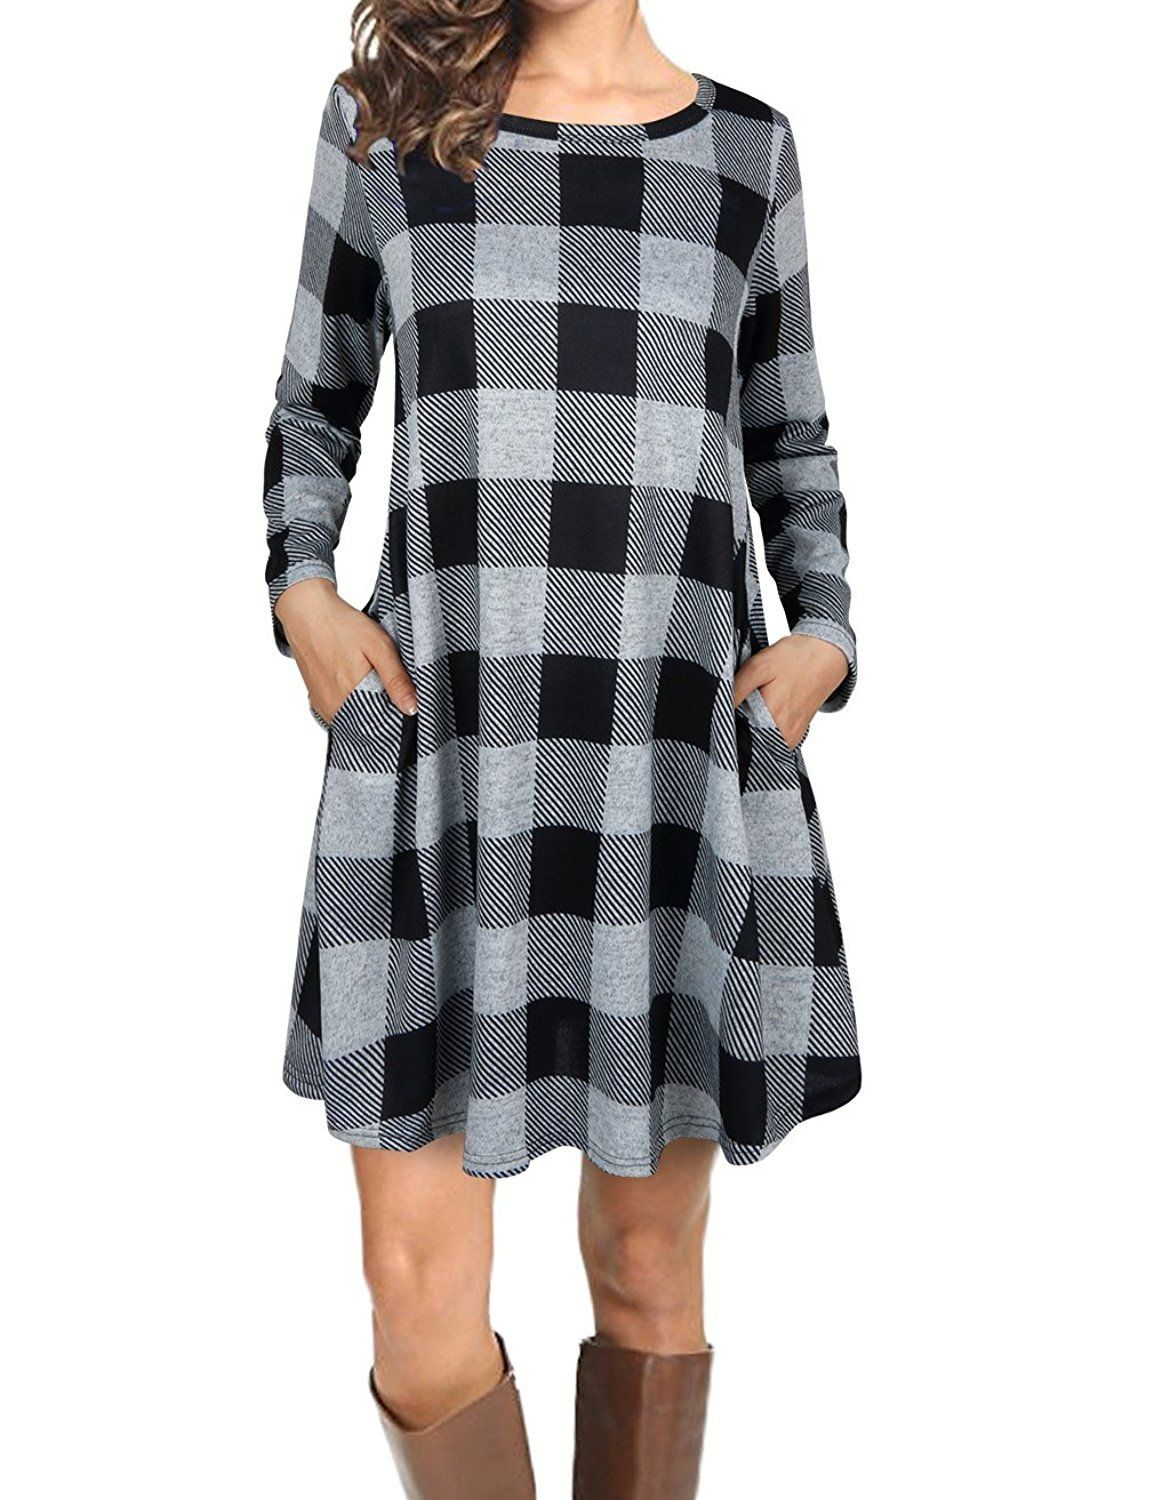 Fansic women casual long sleeve loose checkered plaid swing tunic t